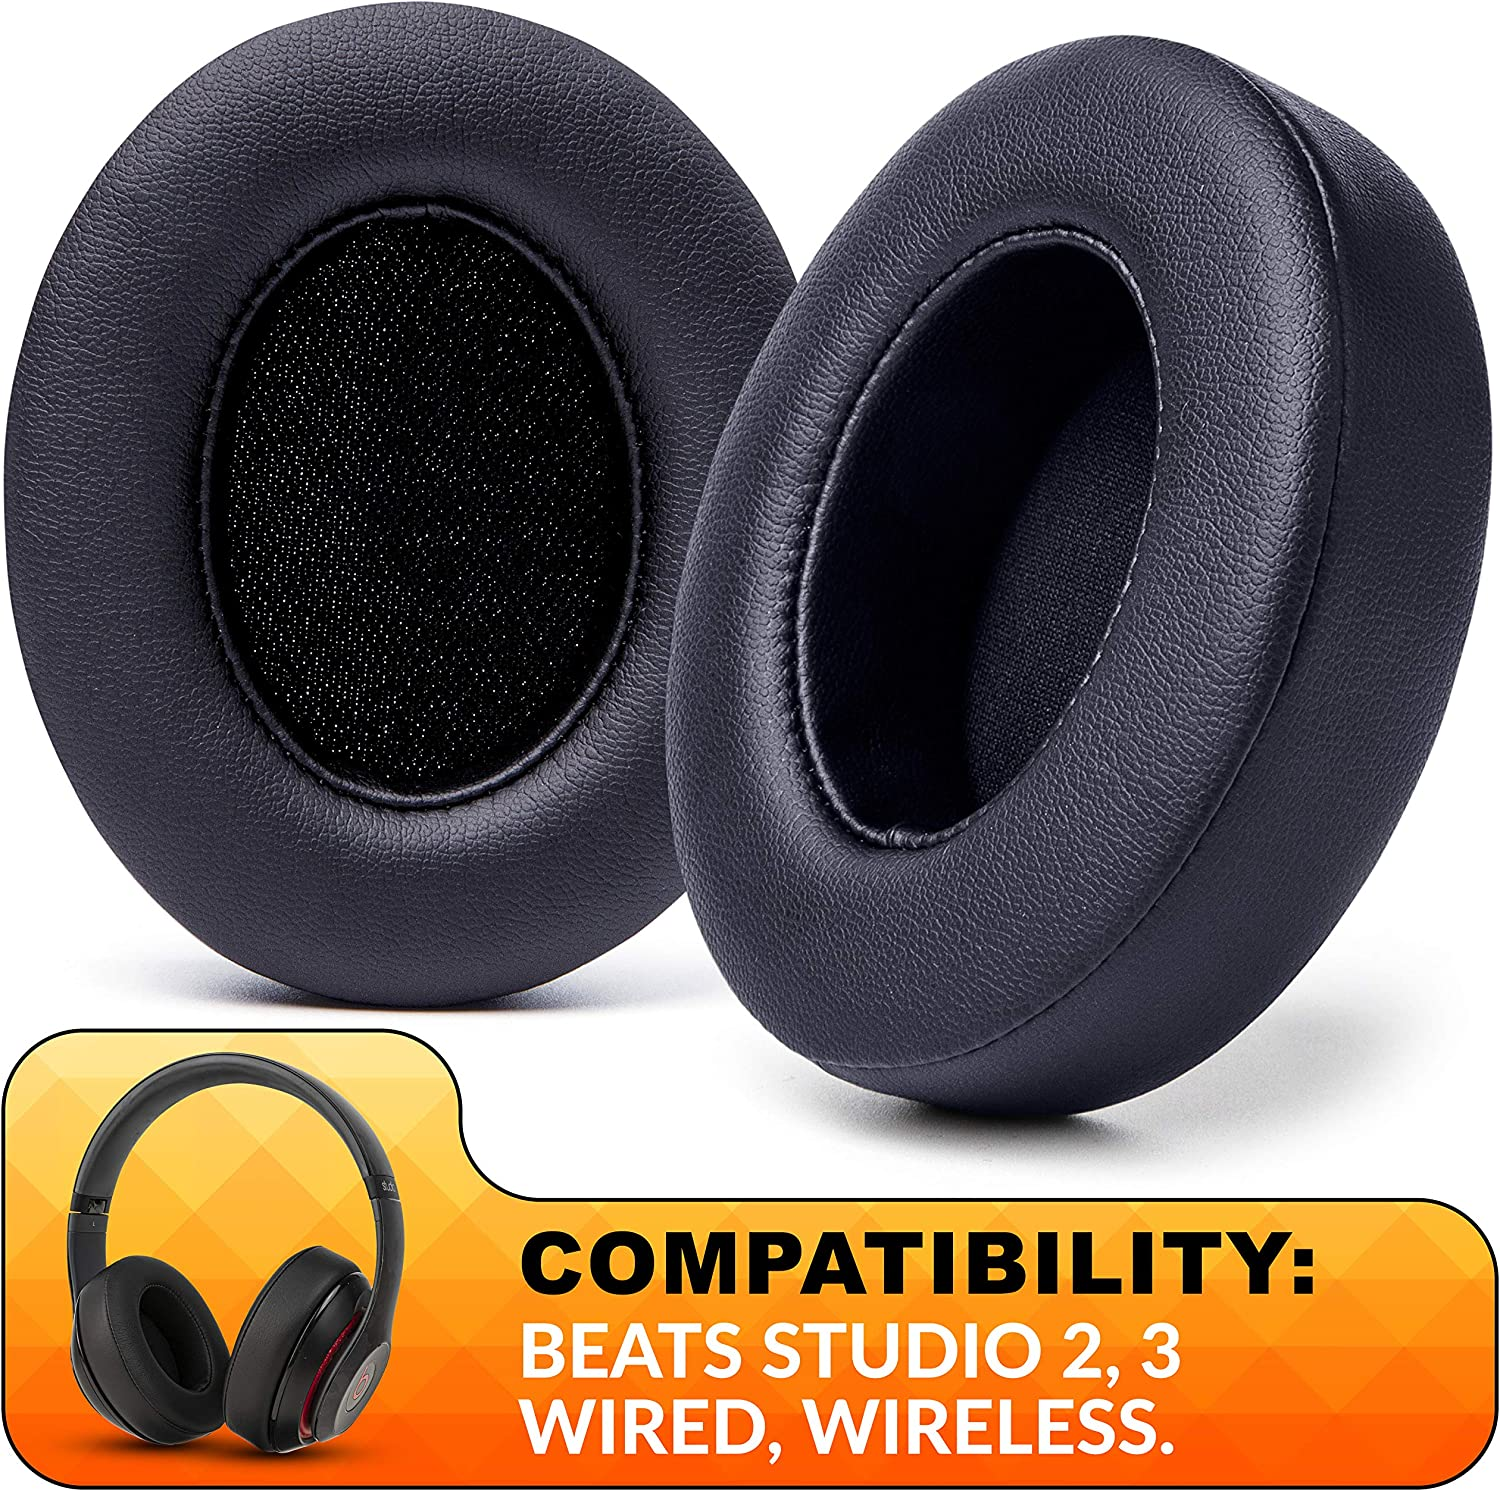 Amazon Com Wc Wicked Cushions Replacement Ear Pads Compatible With Beats Studio 3 Headphones Also Fits Beats Studio 2 Studio Wired Studio Wireless Enhanced Comfort Durability Improved Adhesive Black Electronics